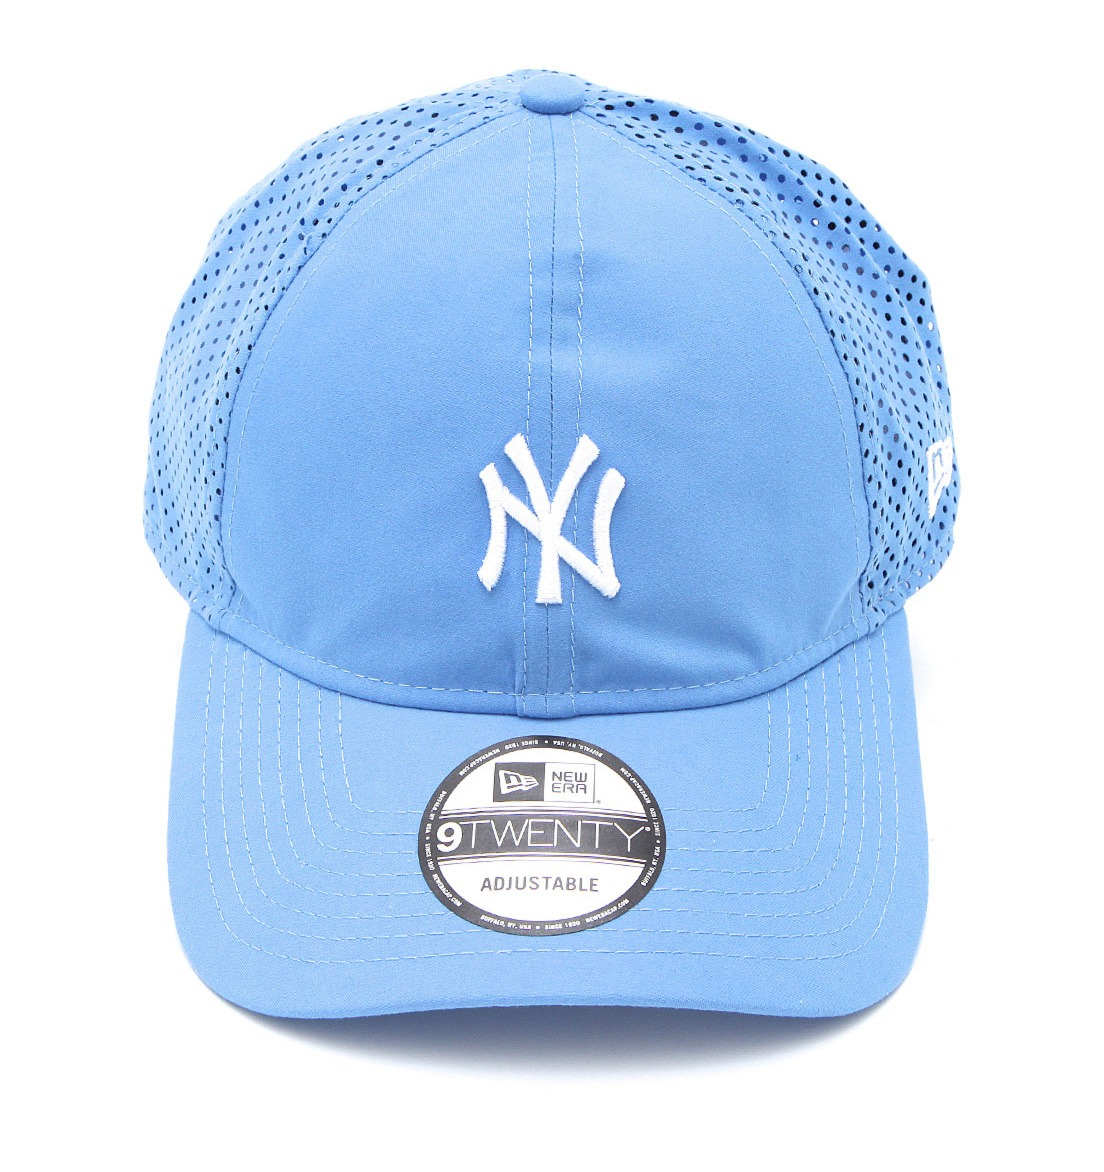 boné new era aba curva 920 new york yankees azul - snapback. Carregando  zoom. 8d9db51a966b4